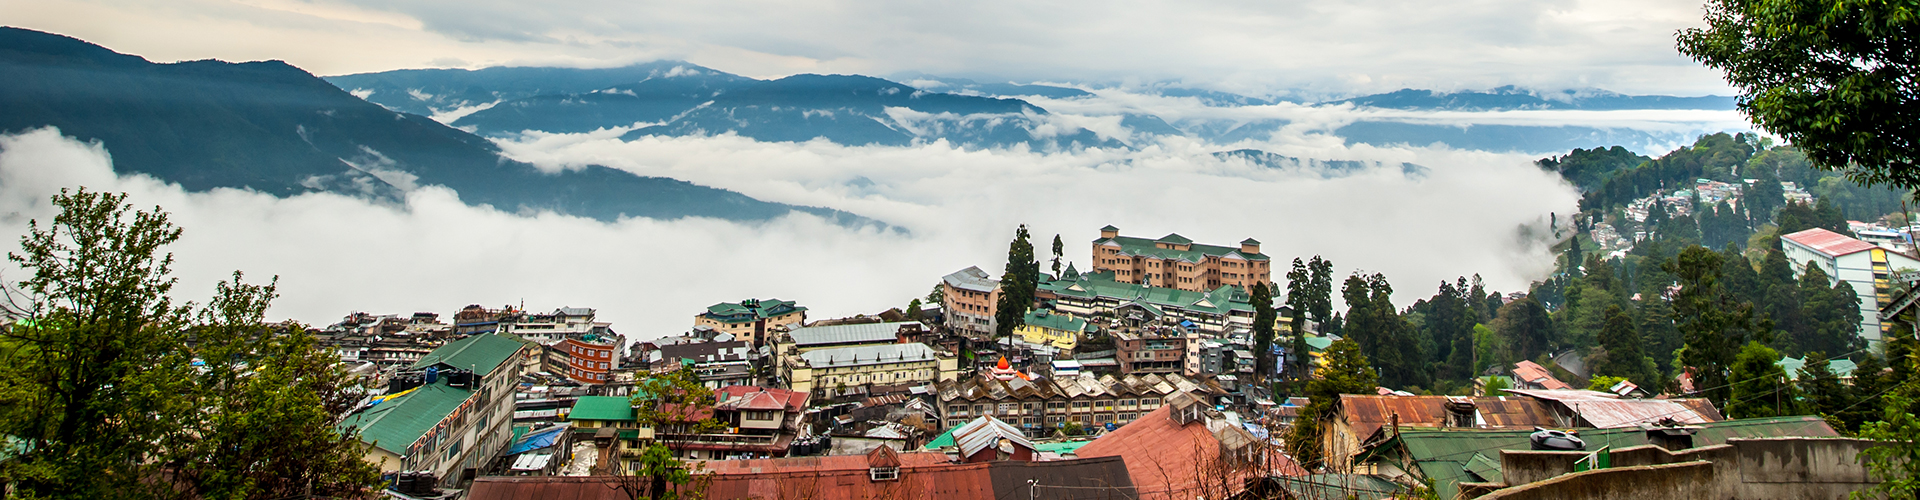 Eastern India and Himalayas